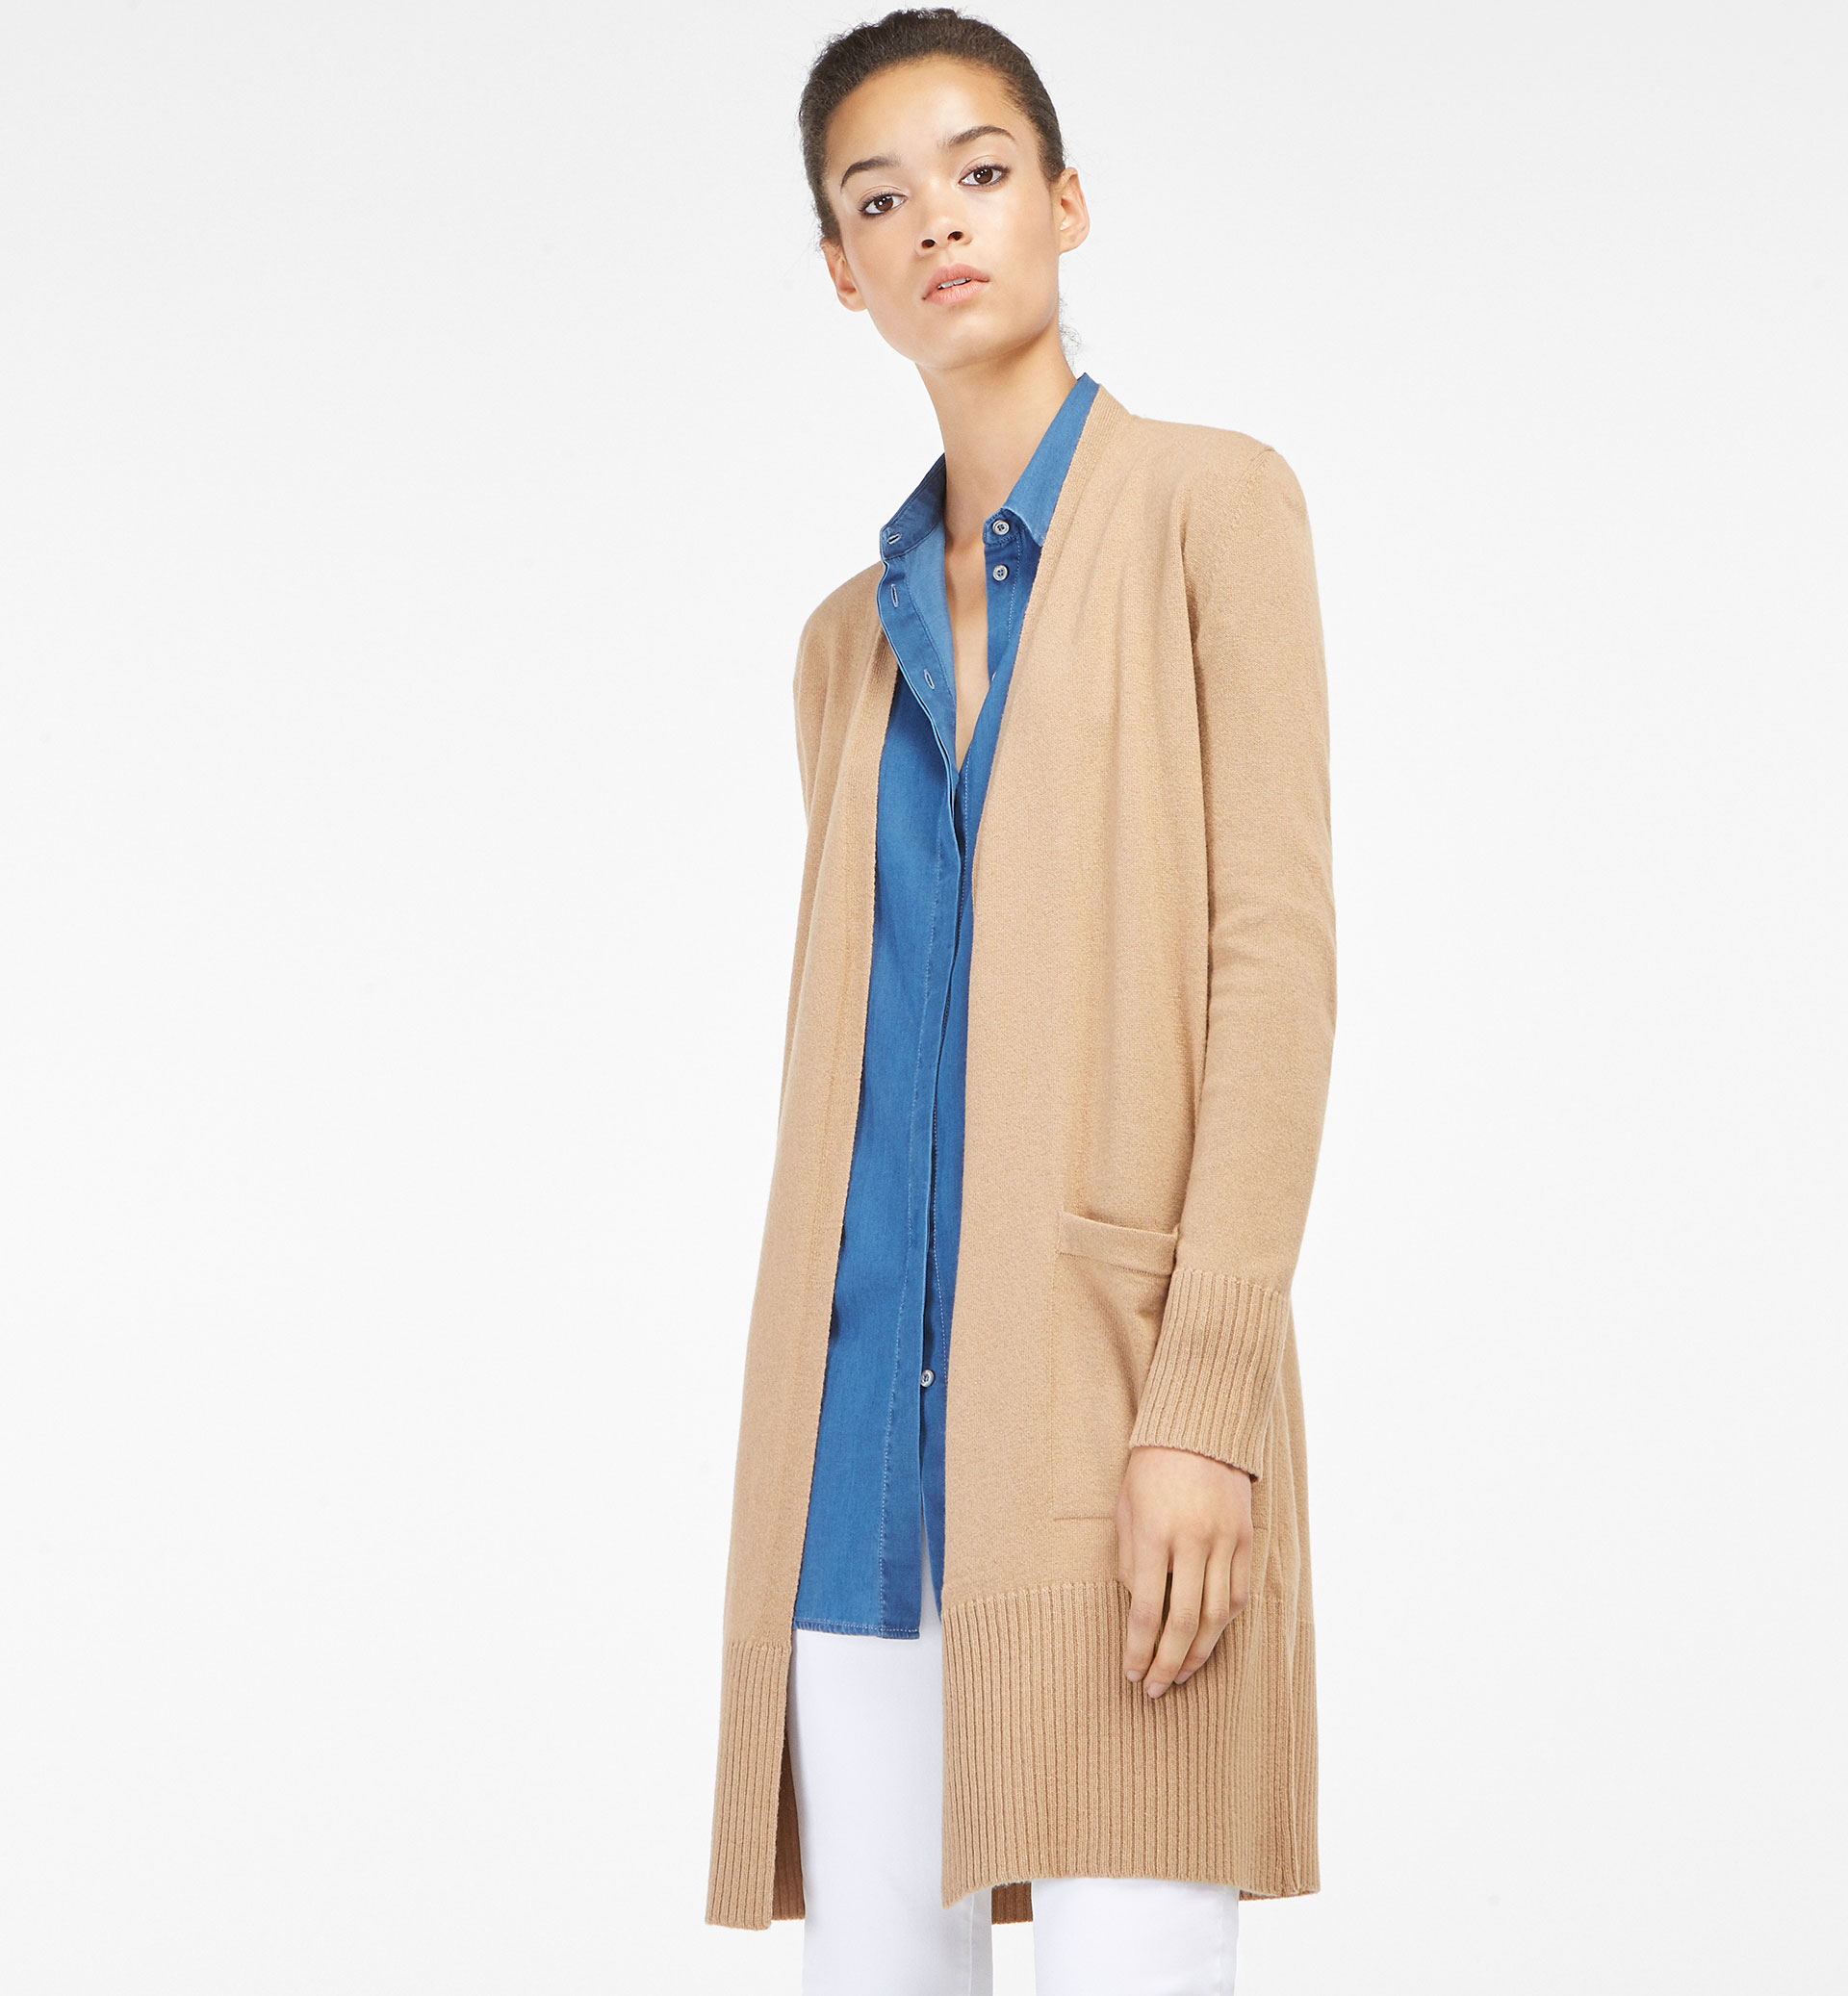 LONG CARDIGAN WITH POCKET DETAIL